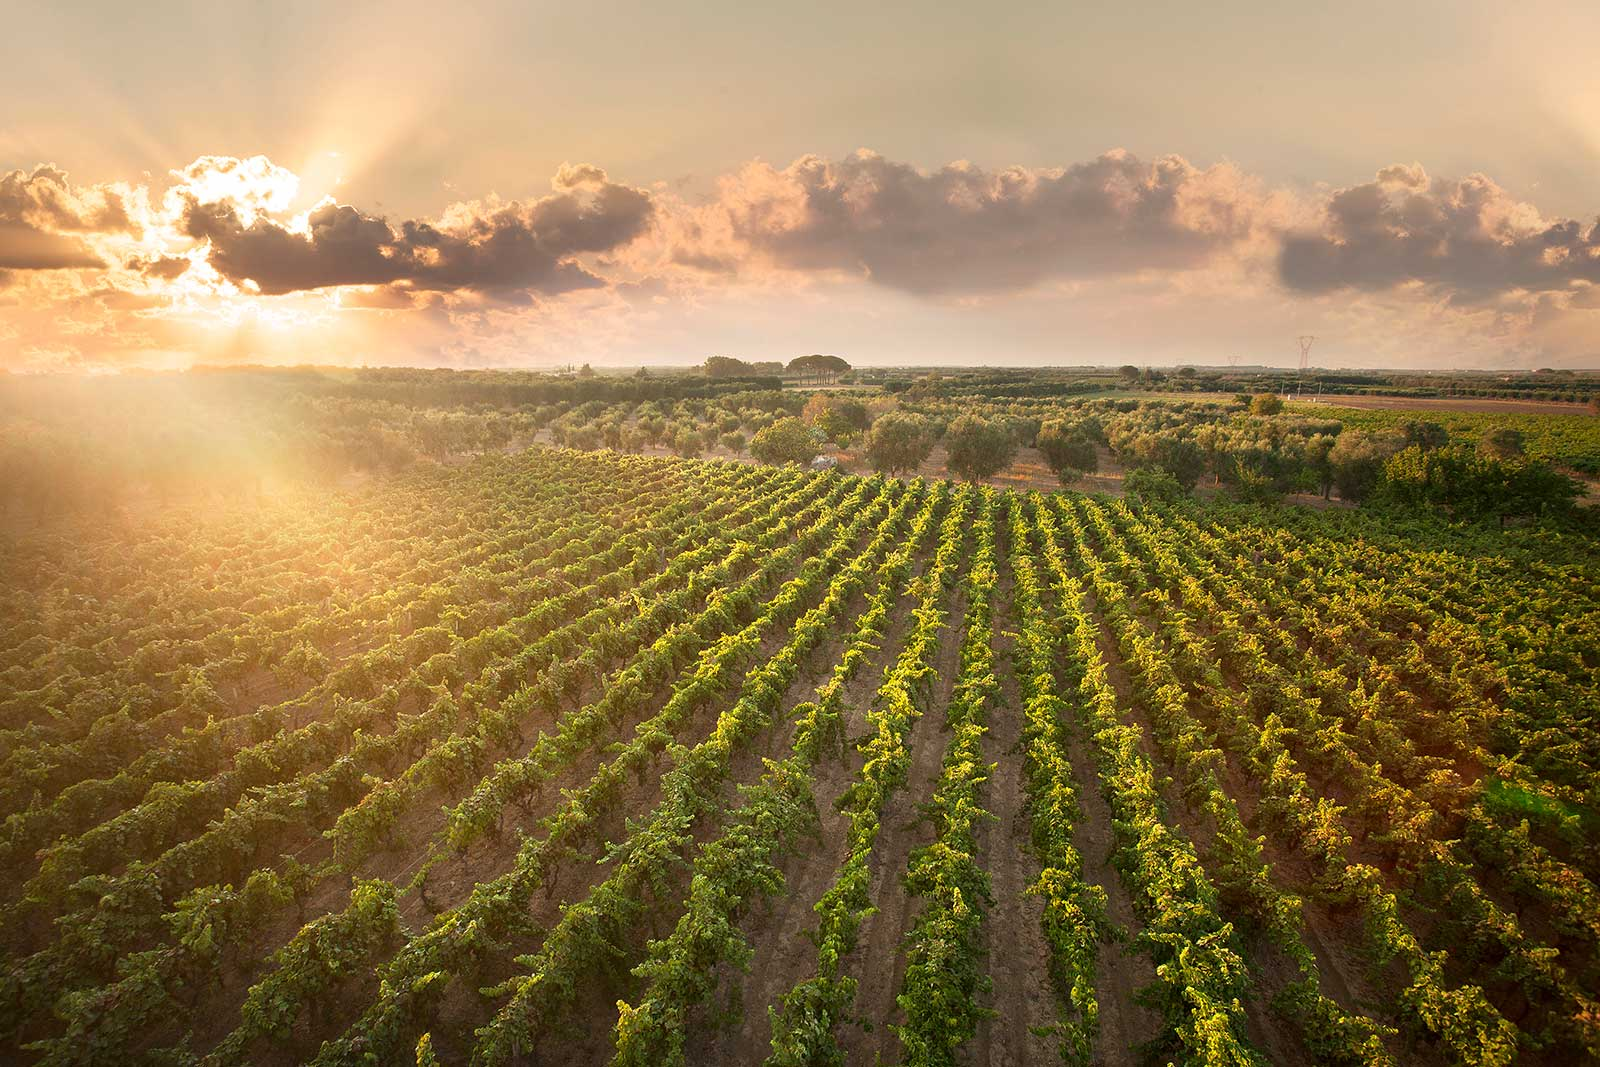 Cantele's vineyards in Puglia. ©Cantele